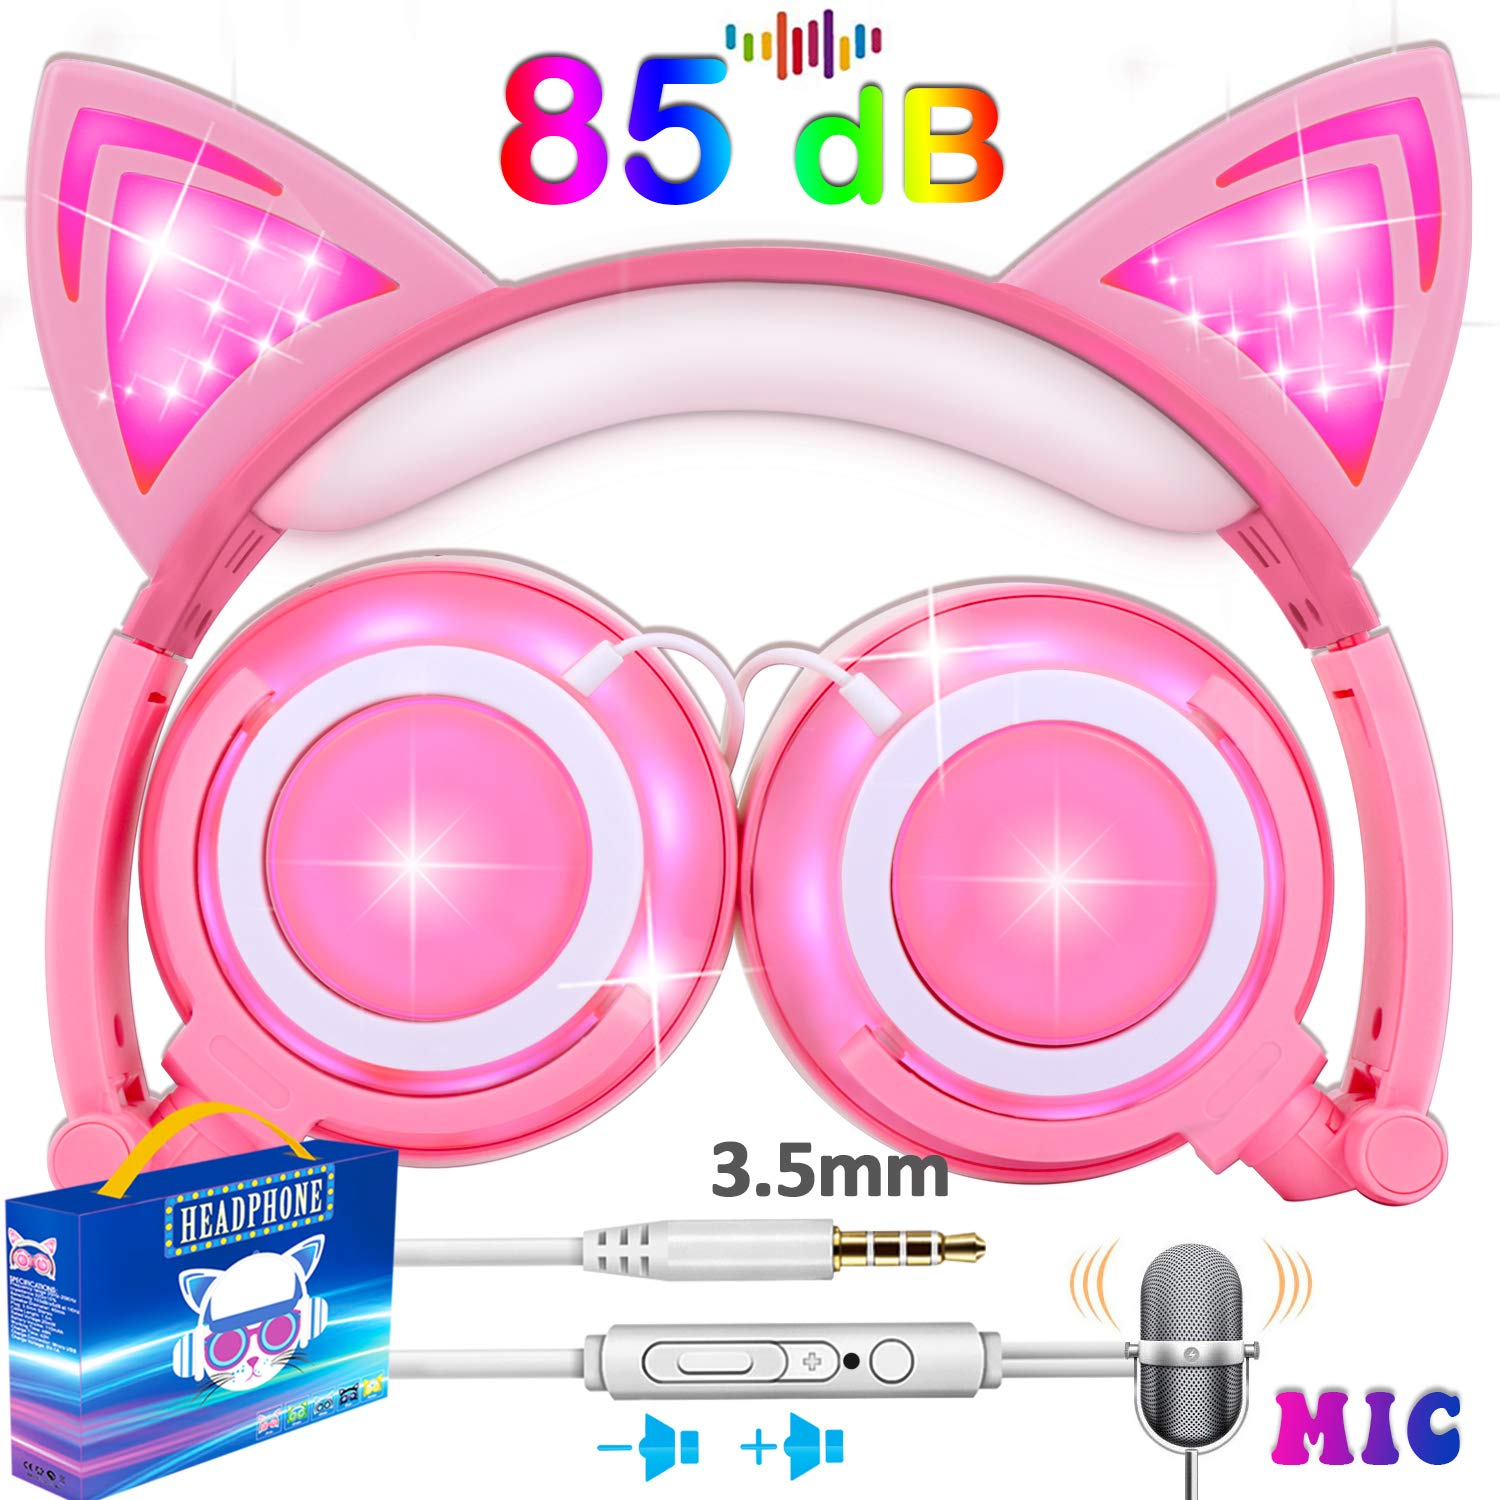 Kids Cat Ear Headphones for Girls Boys Toddler with Mic LED Light 85dB Volume Limit USB Rechargeable Wired Foldable iGeeKid Over/On Ear Headset Phone Tablet Travel School Music Device Gift Pink